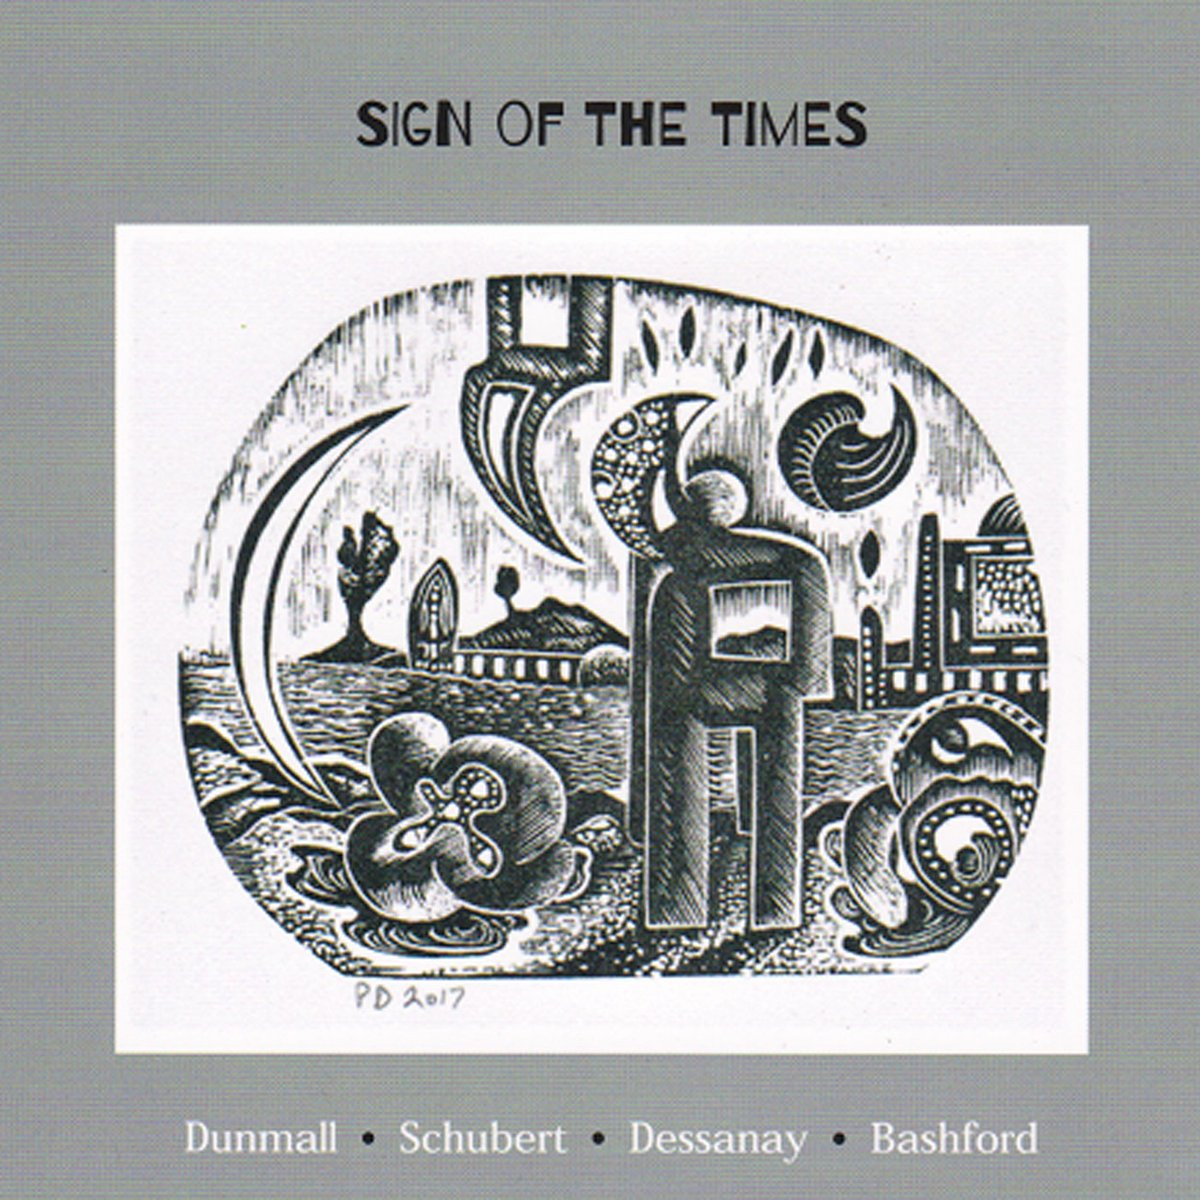 Sign of the Times, Dunmall, Schubert, Dessanay, Bashford